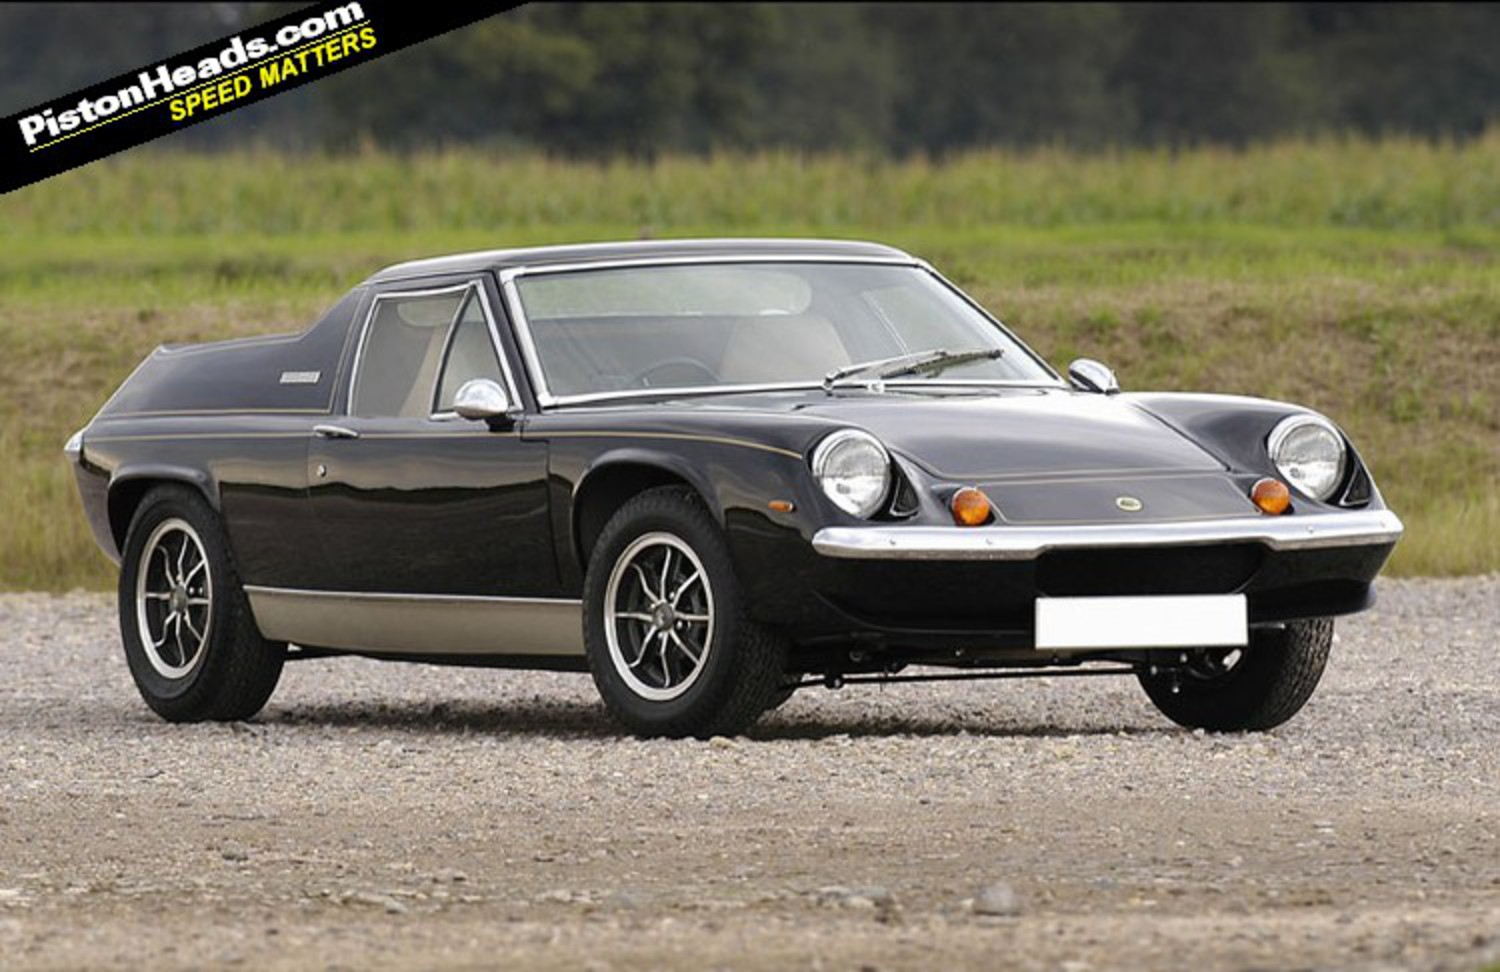 Lotus Europa spy shots are wrong